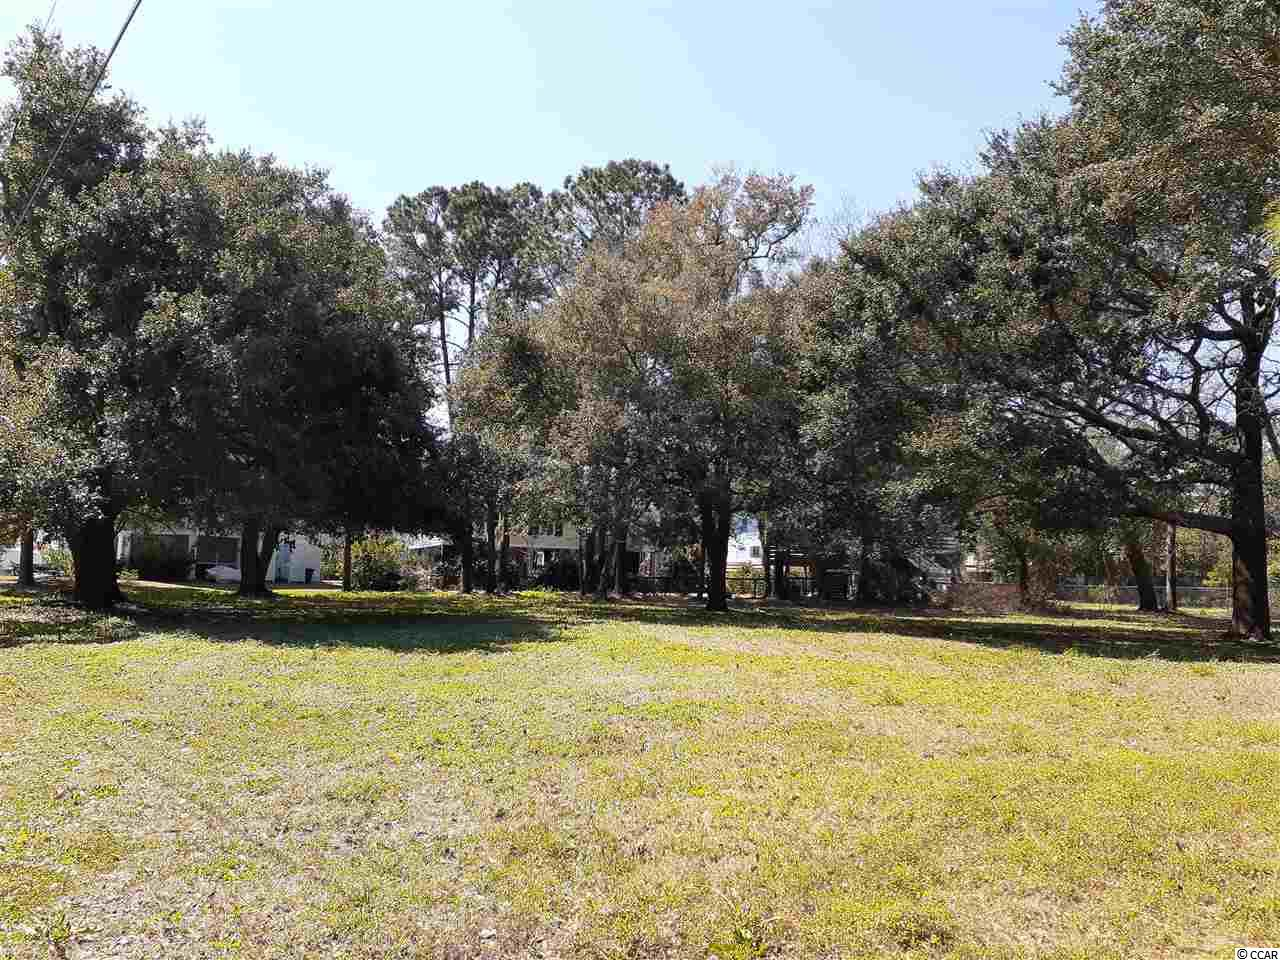 Don't miss out on beautiful sunrises and sweeping marsh views on one of the few remaining lots east of hwy. 17 in Pawleys Island, the Hammock Coast. Named in 2020 as one of SL premier beach towns of the southeast.  This oversized lot with historic Live oaks is close to everything including premier dining, schools, shopping, medical facilities and public access at Litchfield Beaches. Perfect for permanent, rental or vacation home, this quaint beach community has NO HOA and is a perfect place to build your dream home . Adjacent lot also available for sale. Myrtle Beach just 10 minutes up the coast and Charleston approx. 70 miles south.